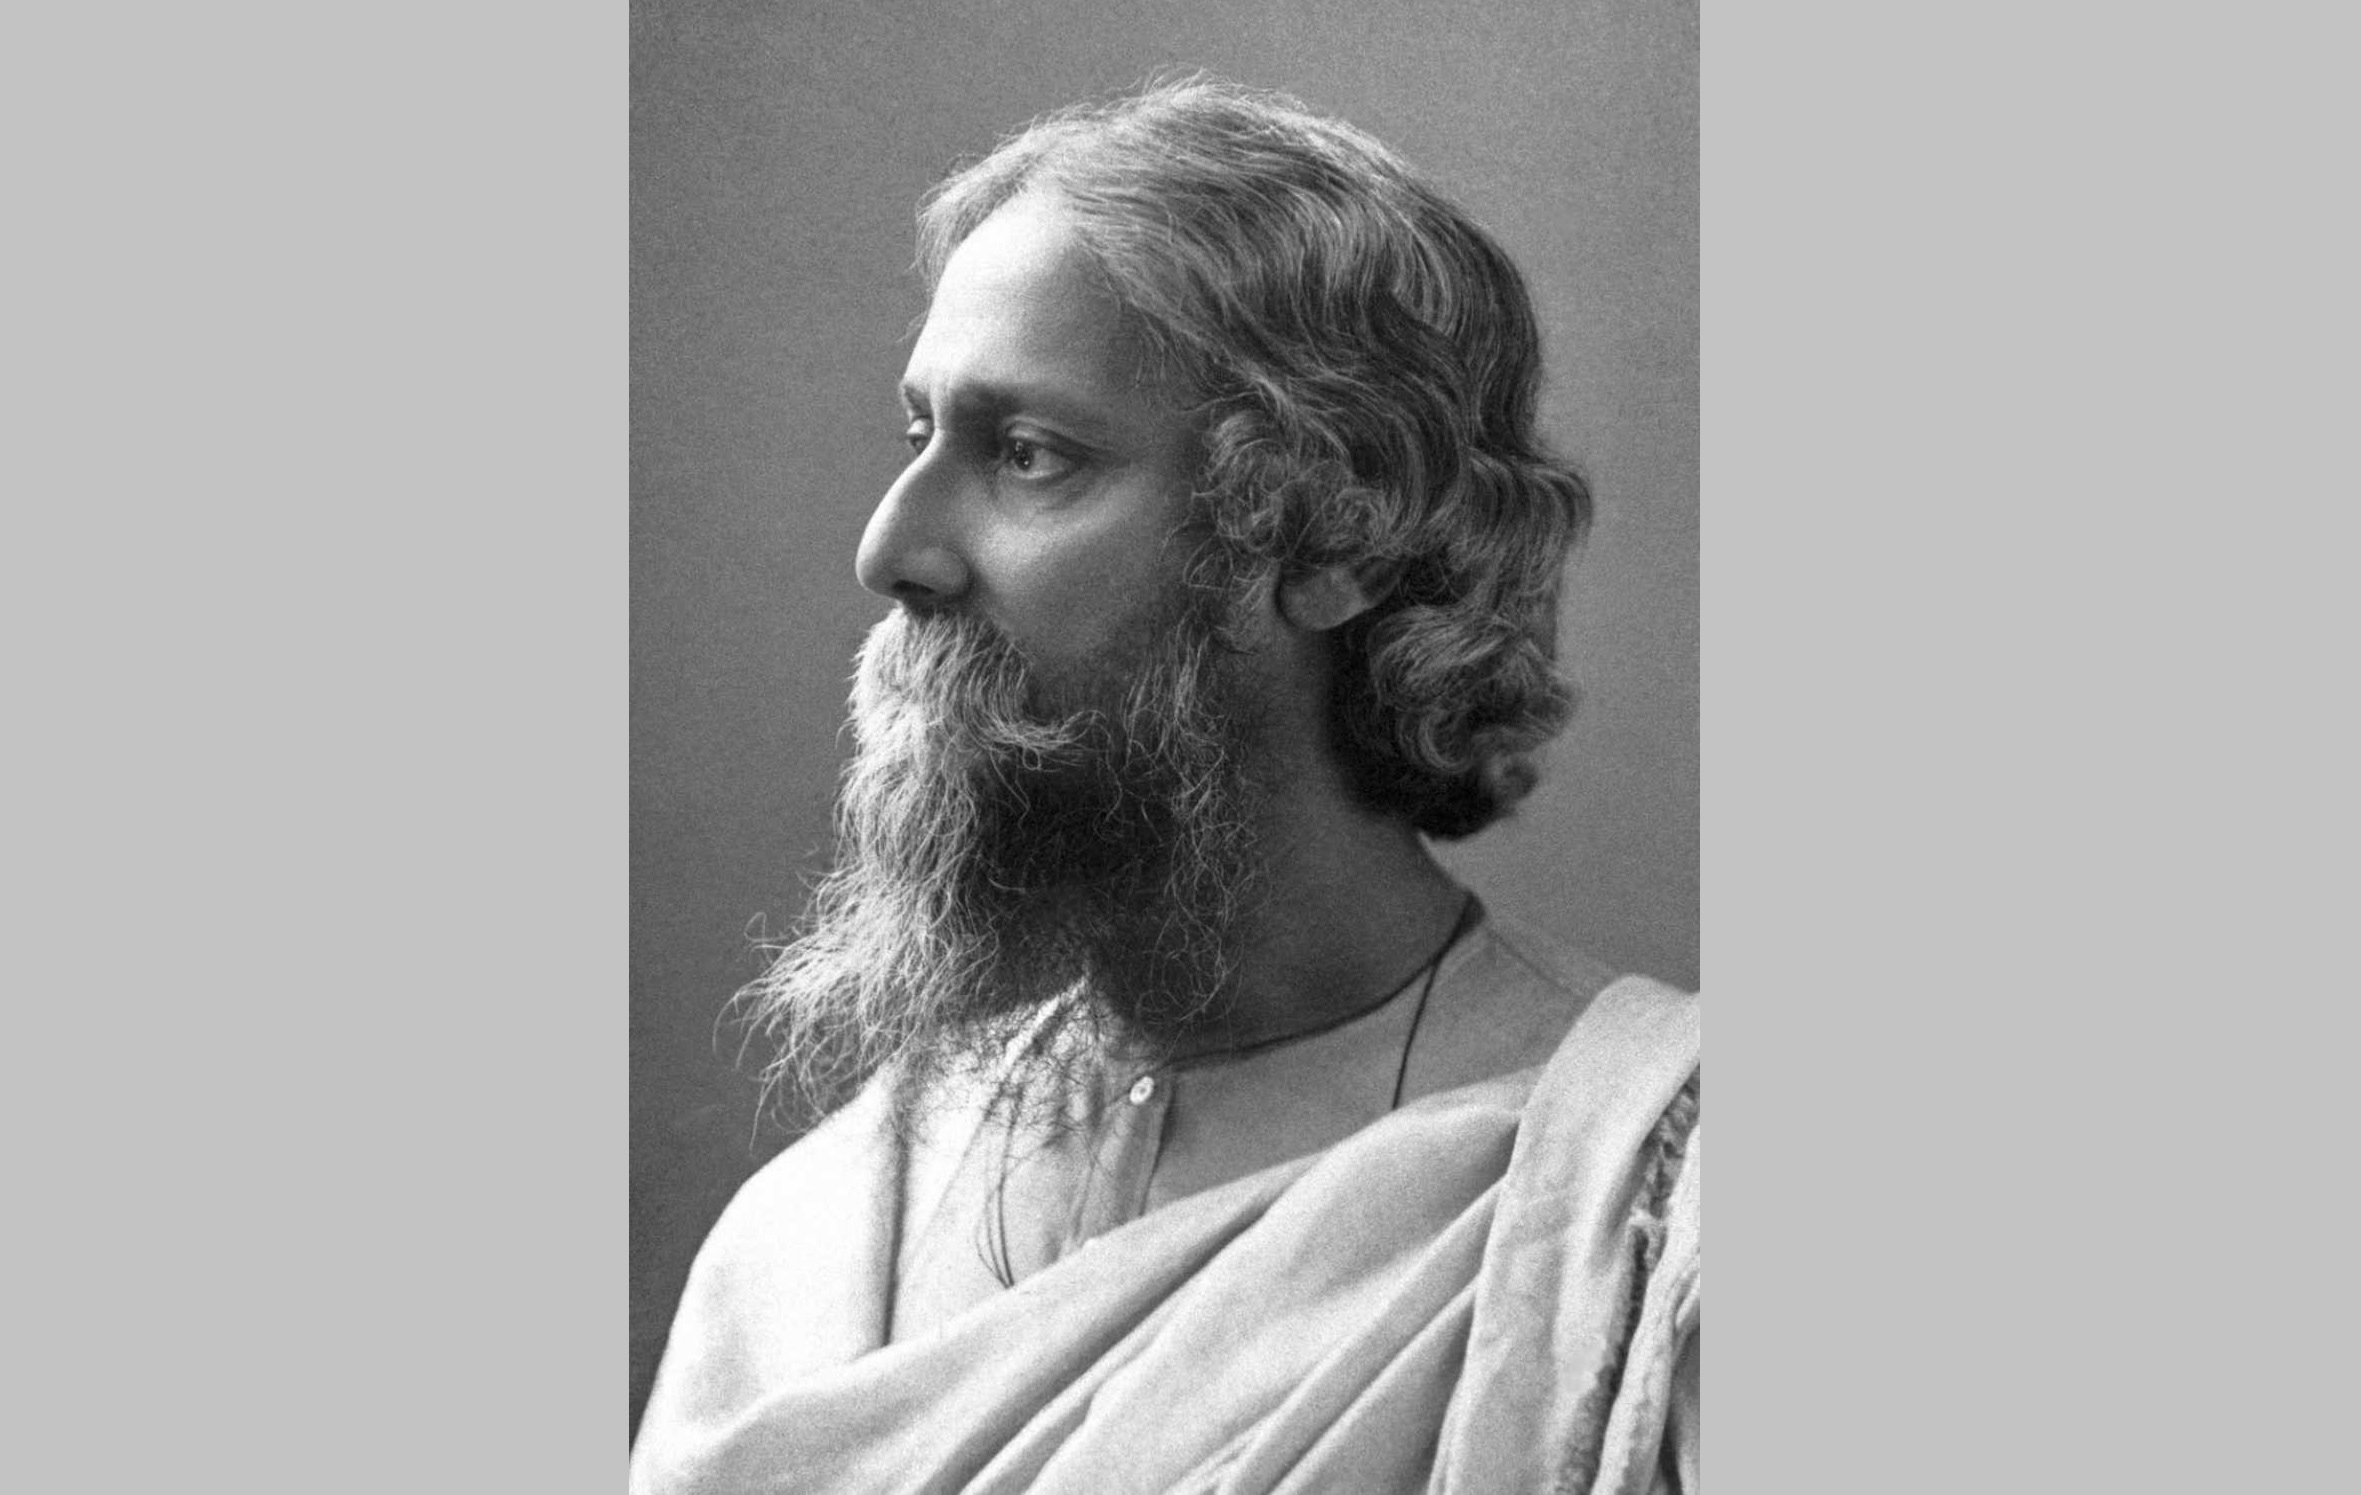 rabindranath tagore quotes quotes and proverbs quoteproverbs